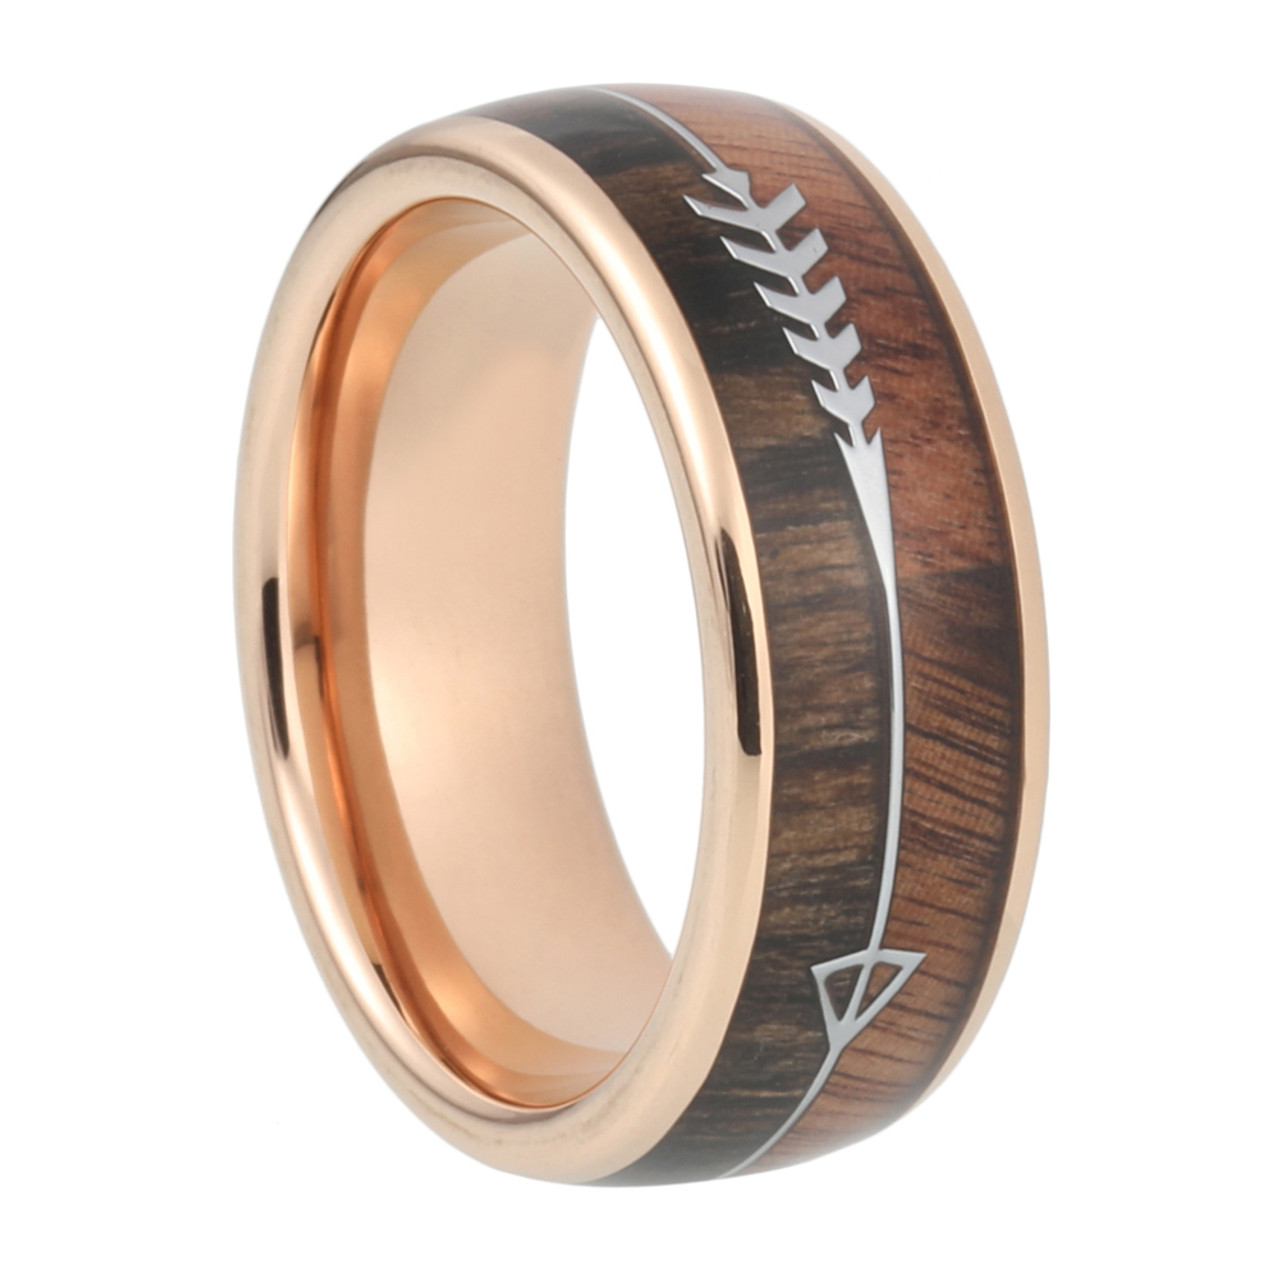 8 Mm 8 Mm Koa Zebra Arrow Design With Rose Gold Sleeve In Tungsten A090c